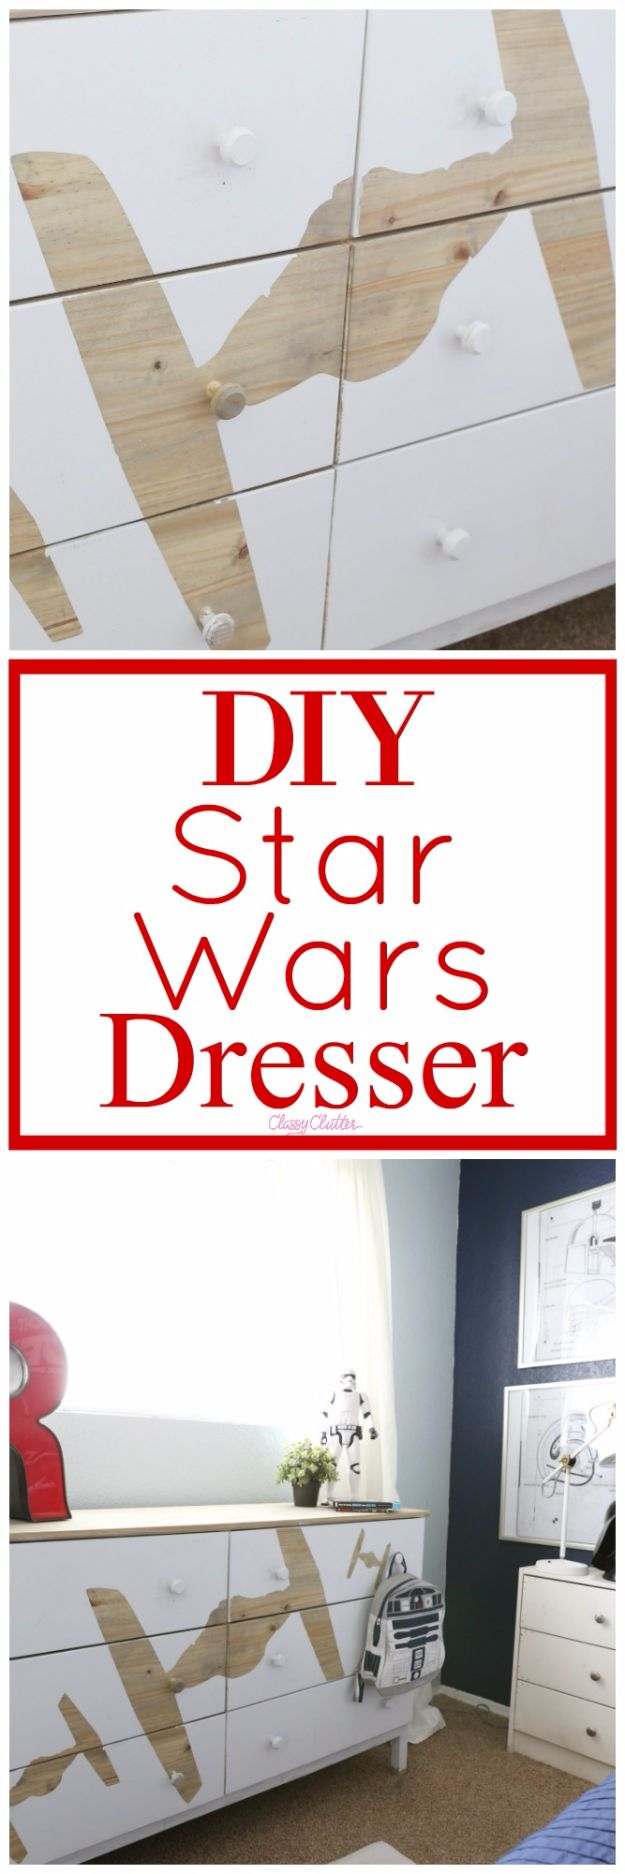 DIY Dressers - DIY Star Wars Dresser - Simple DIY Dresser Ideas - Easy Dresser Upgrades and Makeovers to Create Cool Bedroom Decor On A Budget- Do It Yourself Tutorials and Instructions for Decorating Cheap Furniture - Crafts for Women, Men and Teens http://diyjoy.com/diy-dresser-ideas